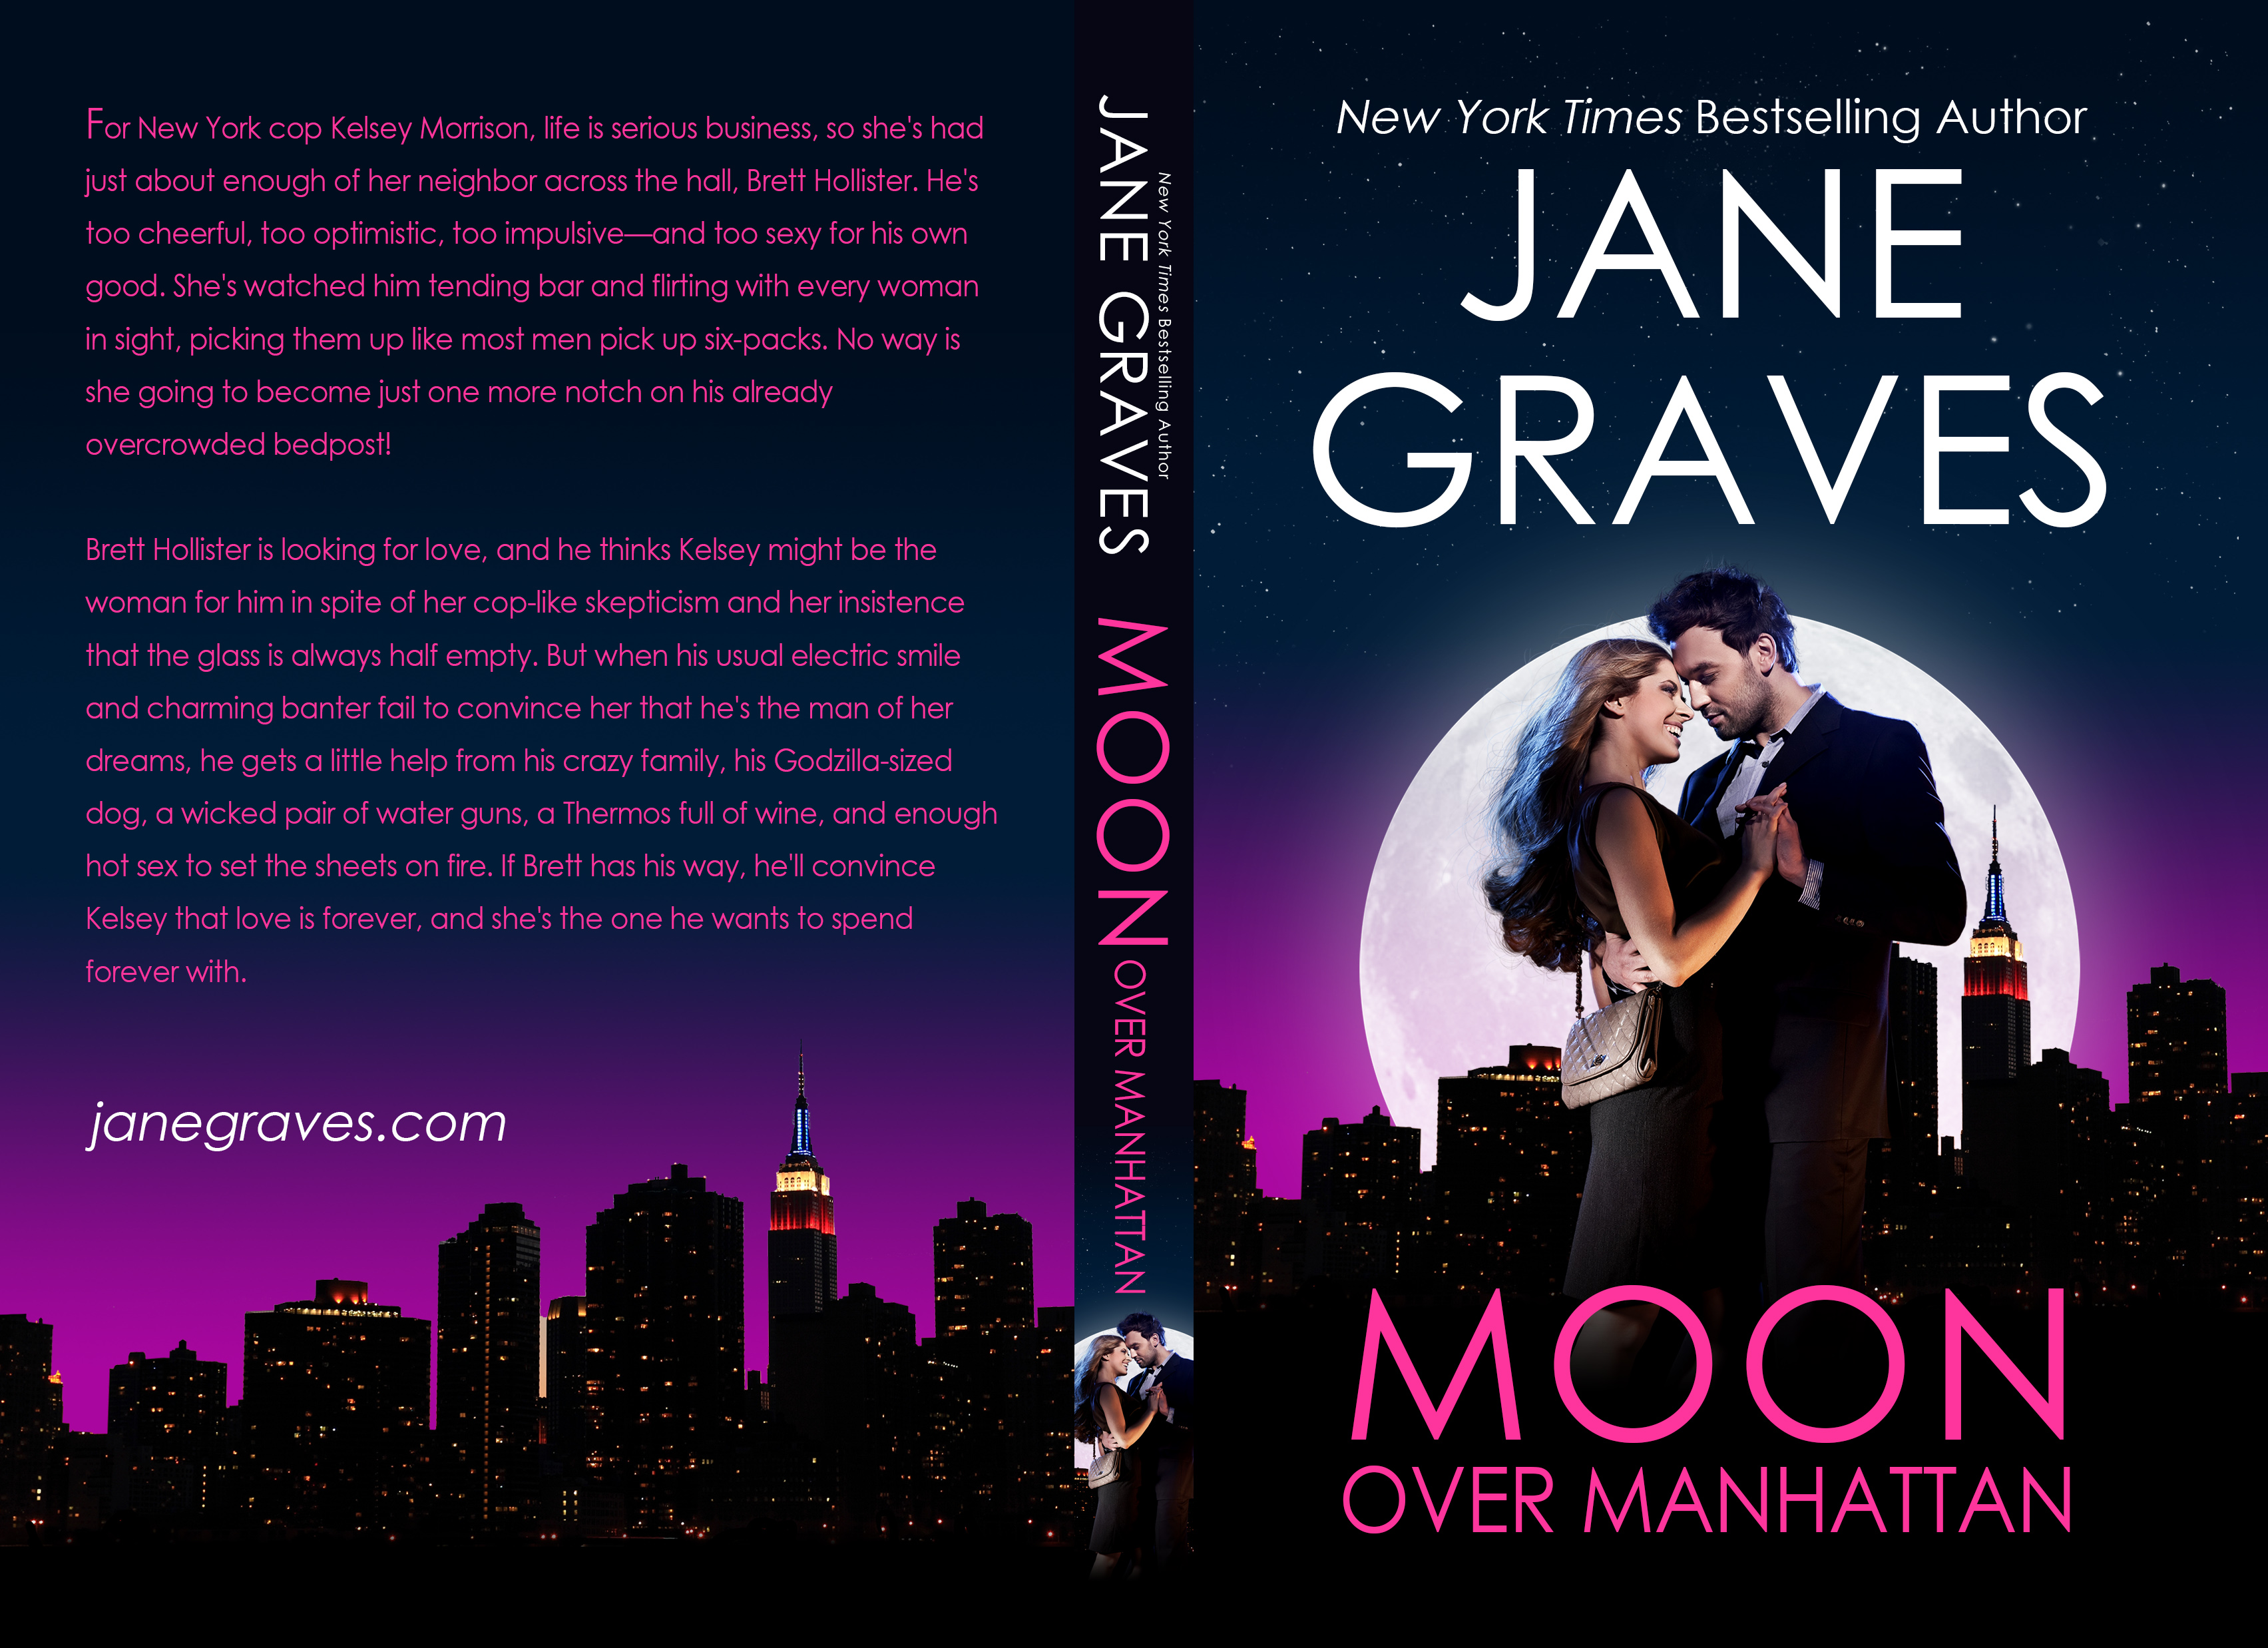 Moon over Manhattan 5_25 x 8 at 268 pages